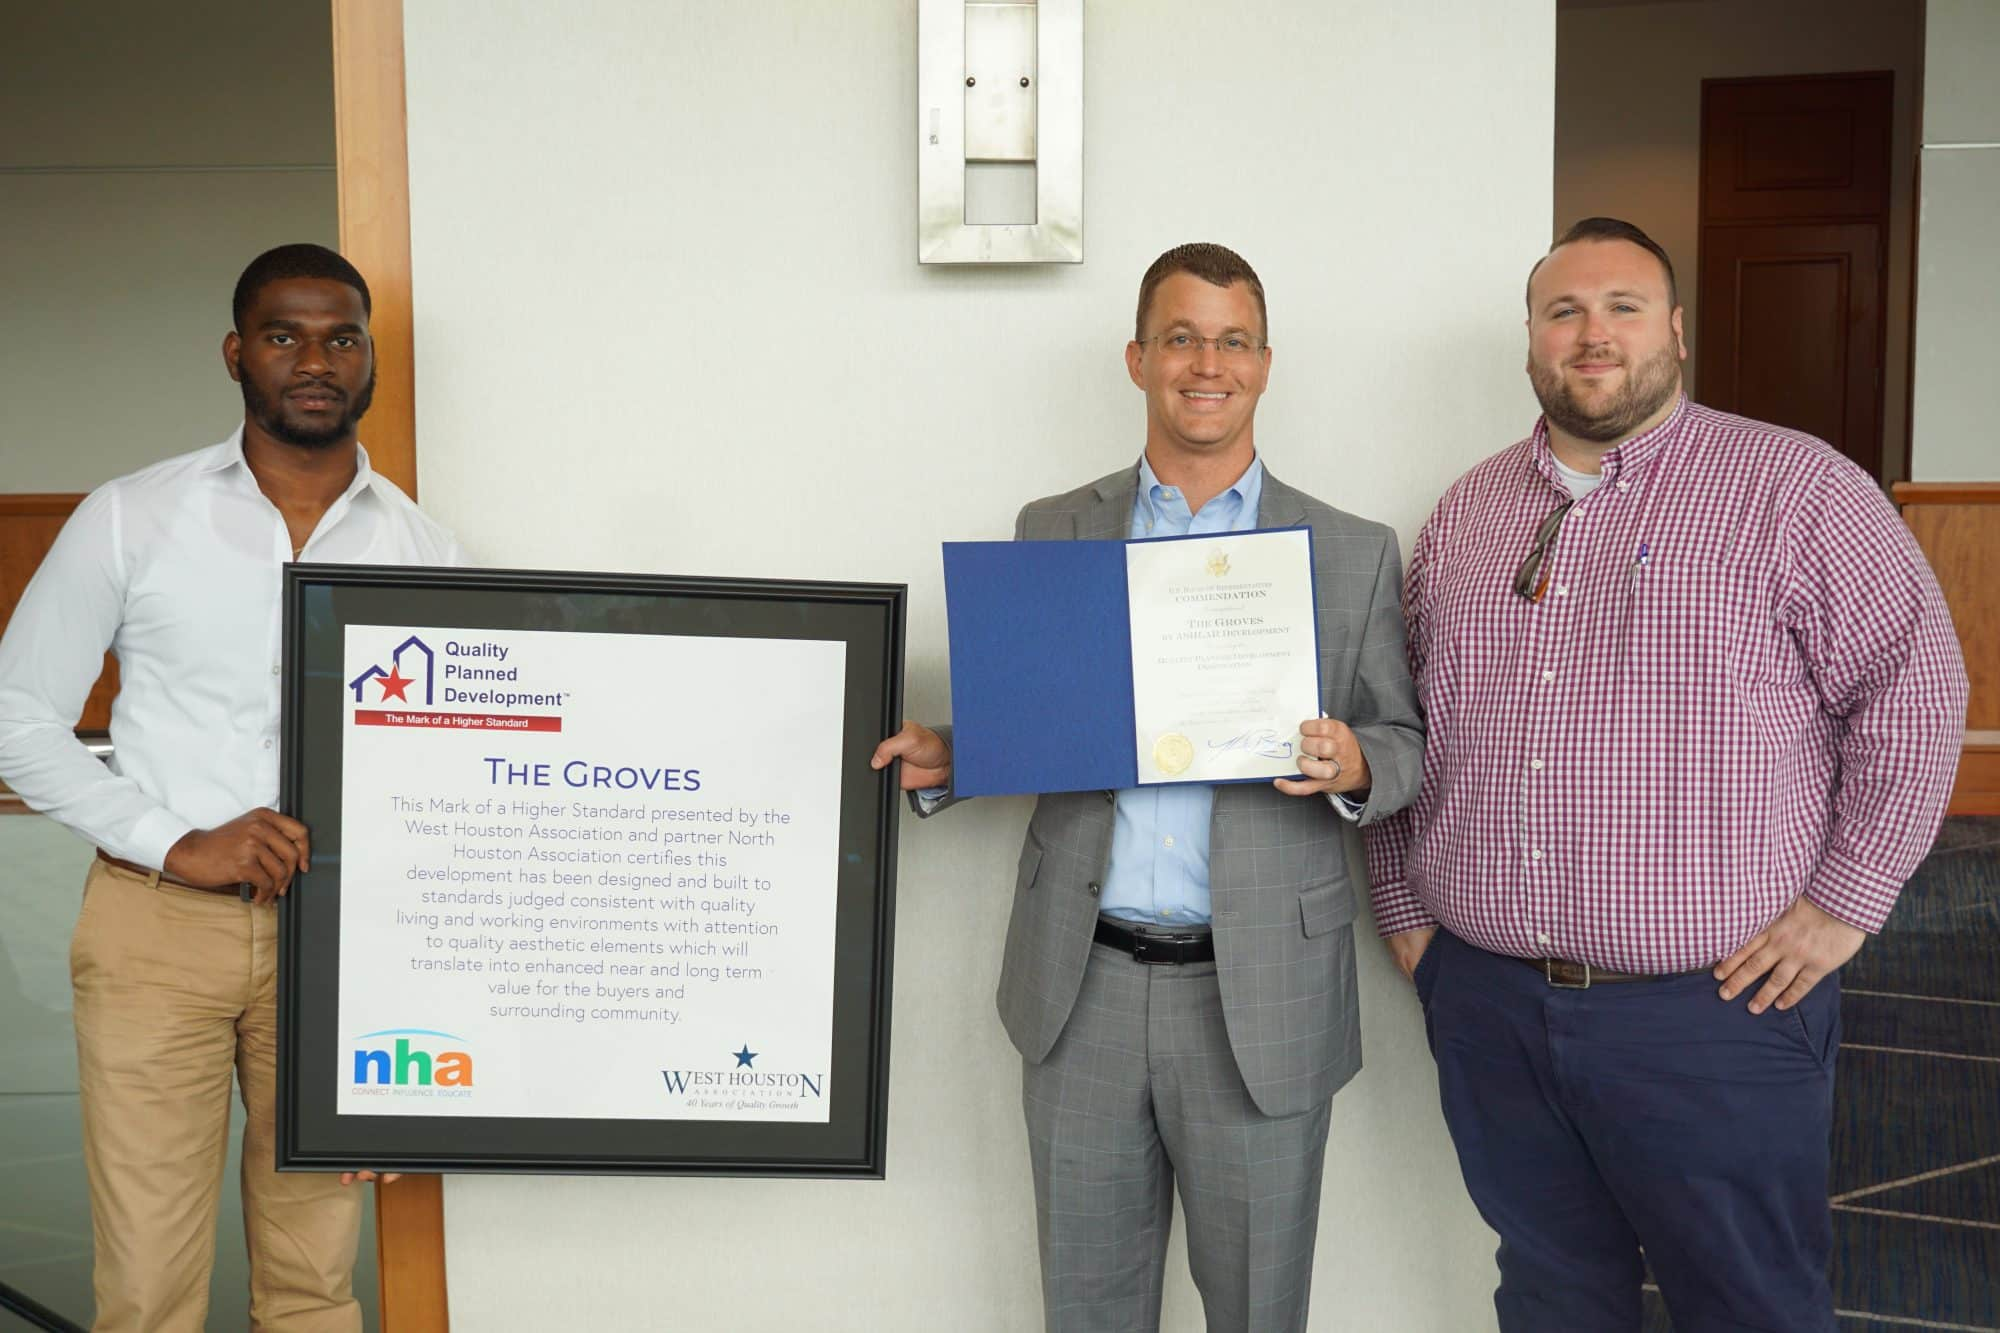 Ashlar team members Royce Brooks, Mike Miller and Brad McFarland with award